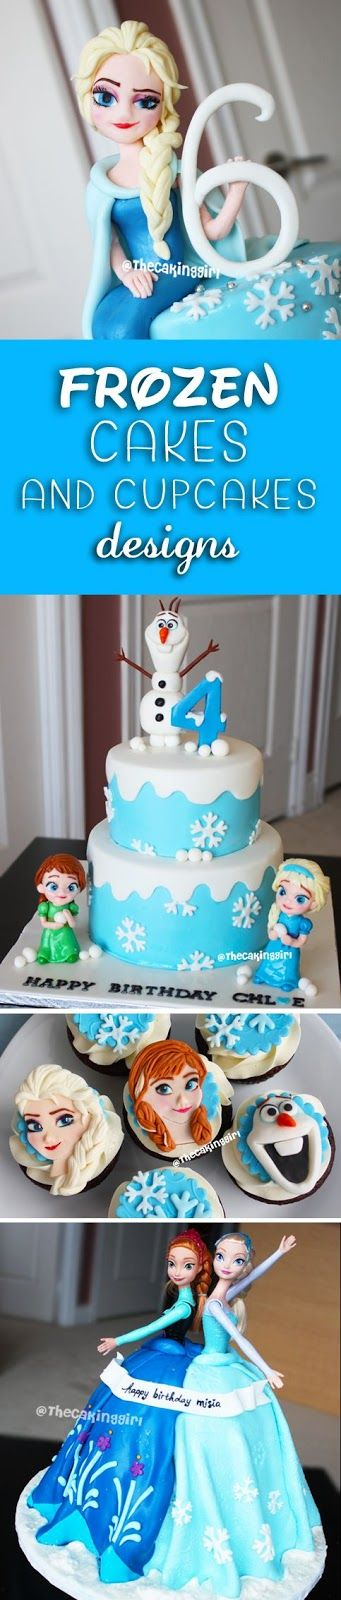 Beautiful Disney Frozen Cakes and Cupcakes designs for inspirations. Frozen birthday cakes for kids.  Fondant/Gumpaste, edible Elsa figurines, edible olaf figurines, edible Anna figurines cake toppers, handmade.  www.thecakinggirl.ca